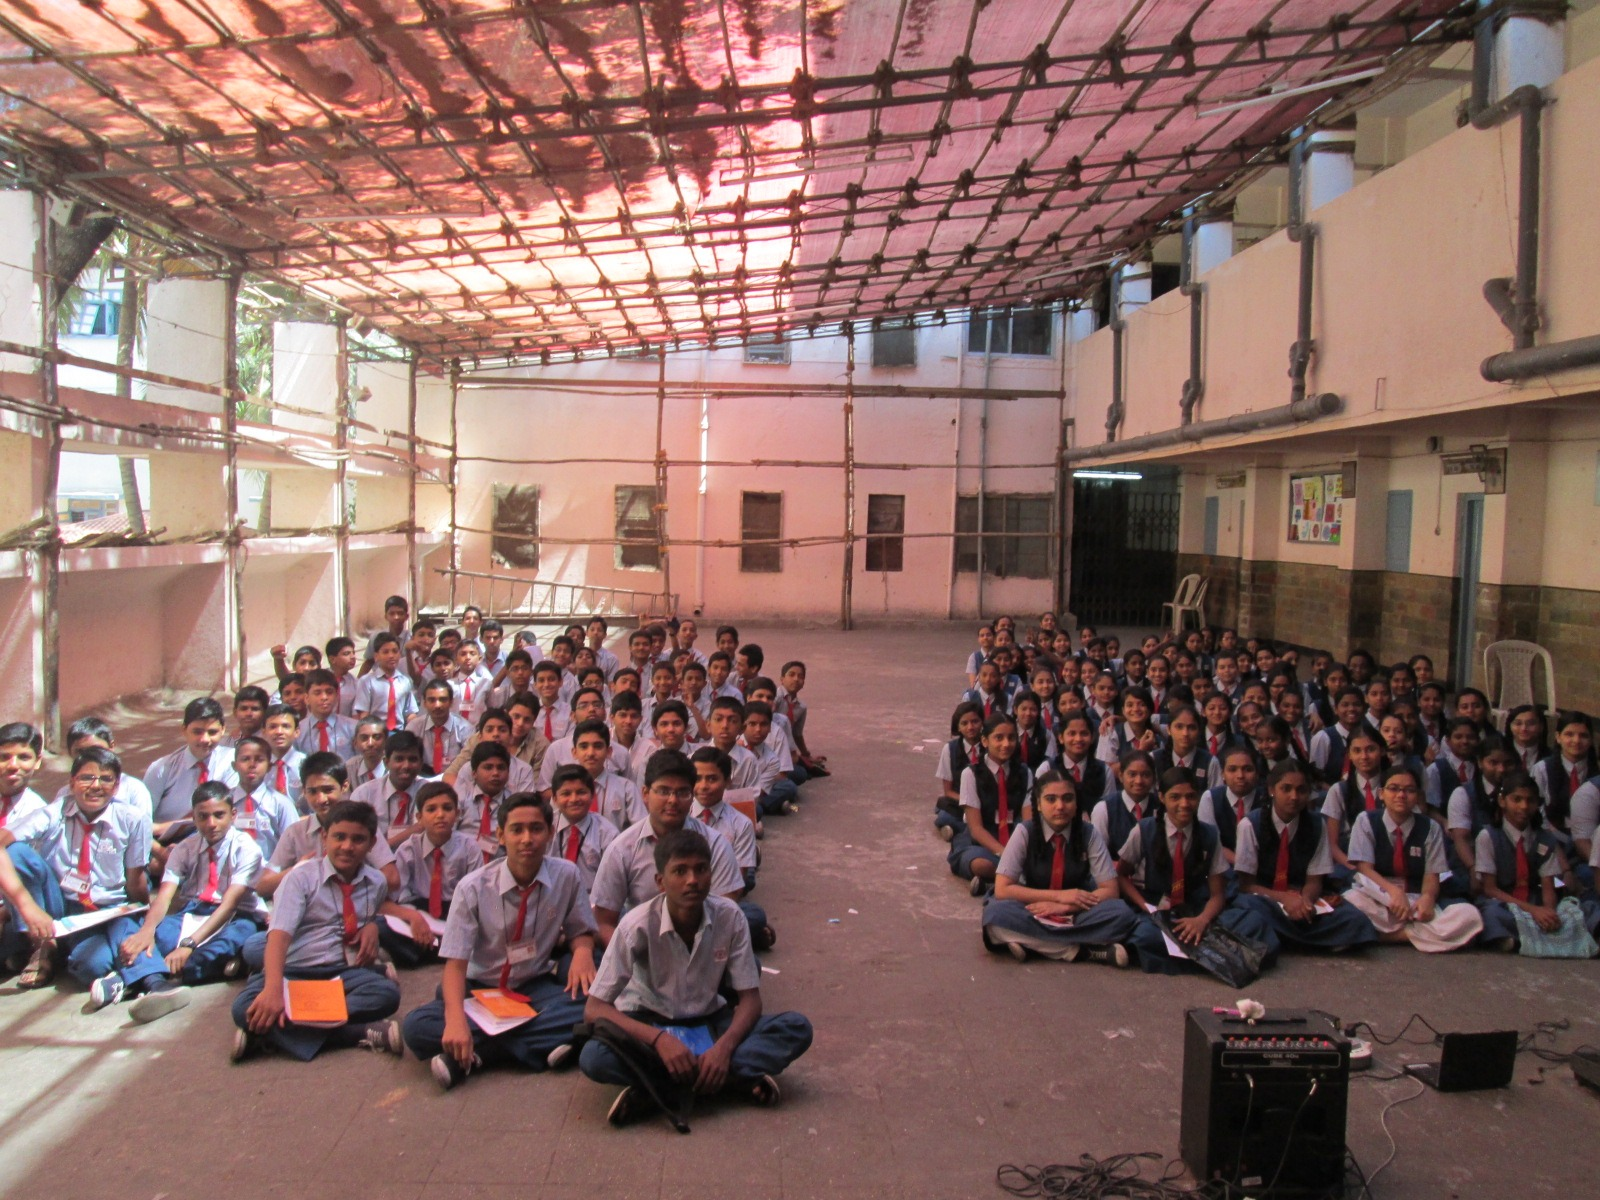 Purushottam School Bandra erected a temporary shed (to avoid sunlight) for the students